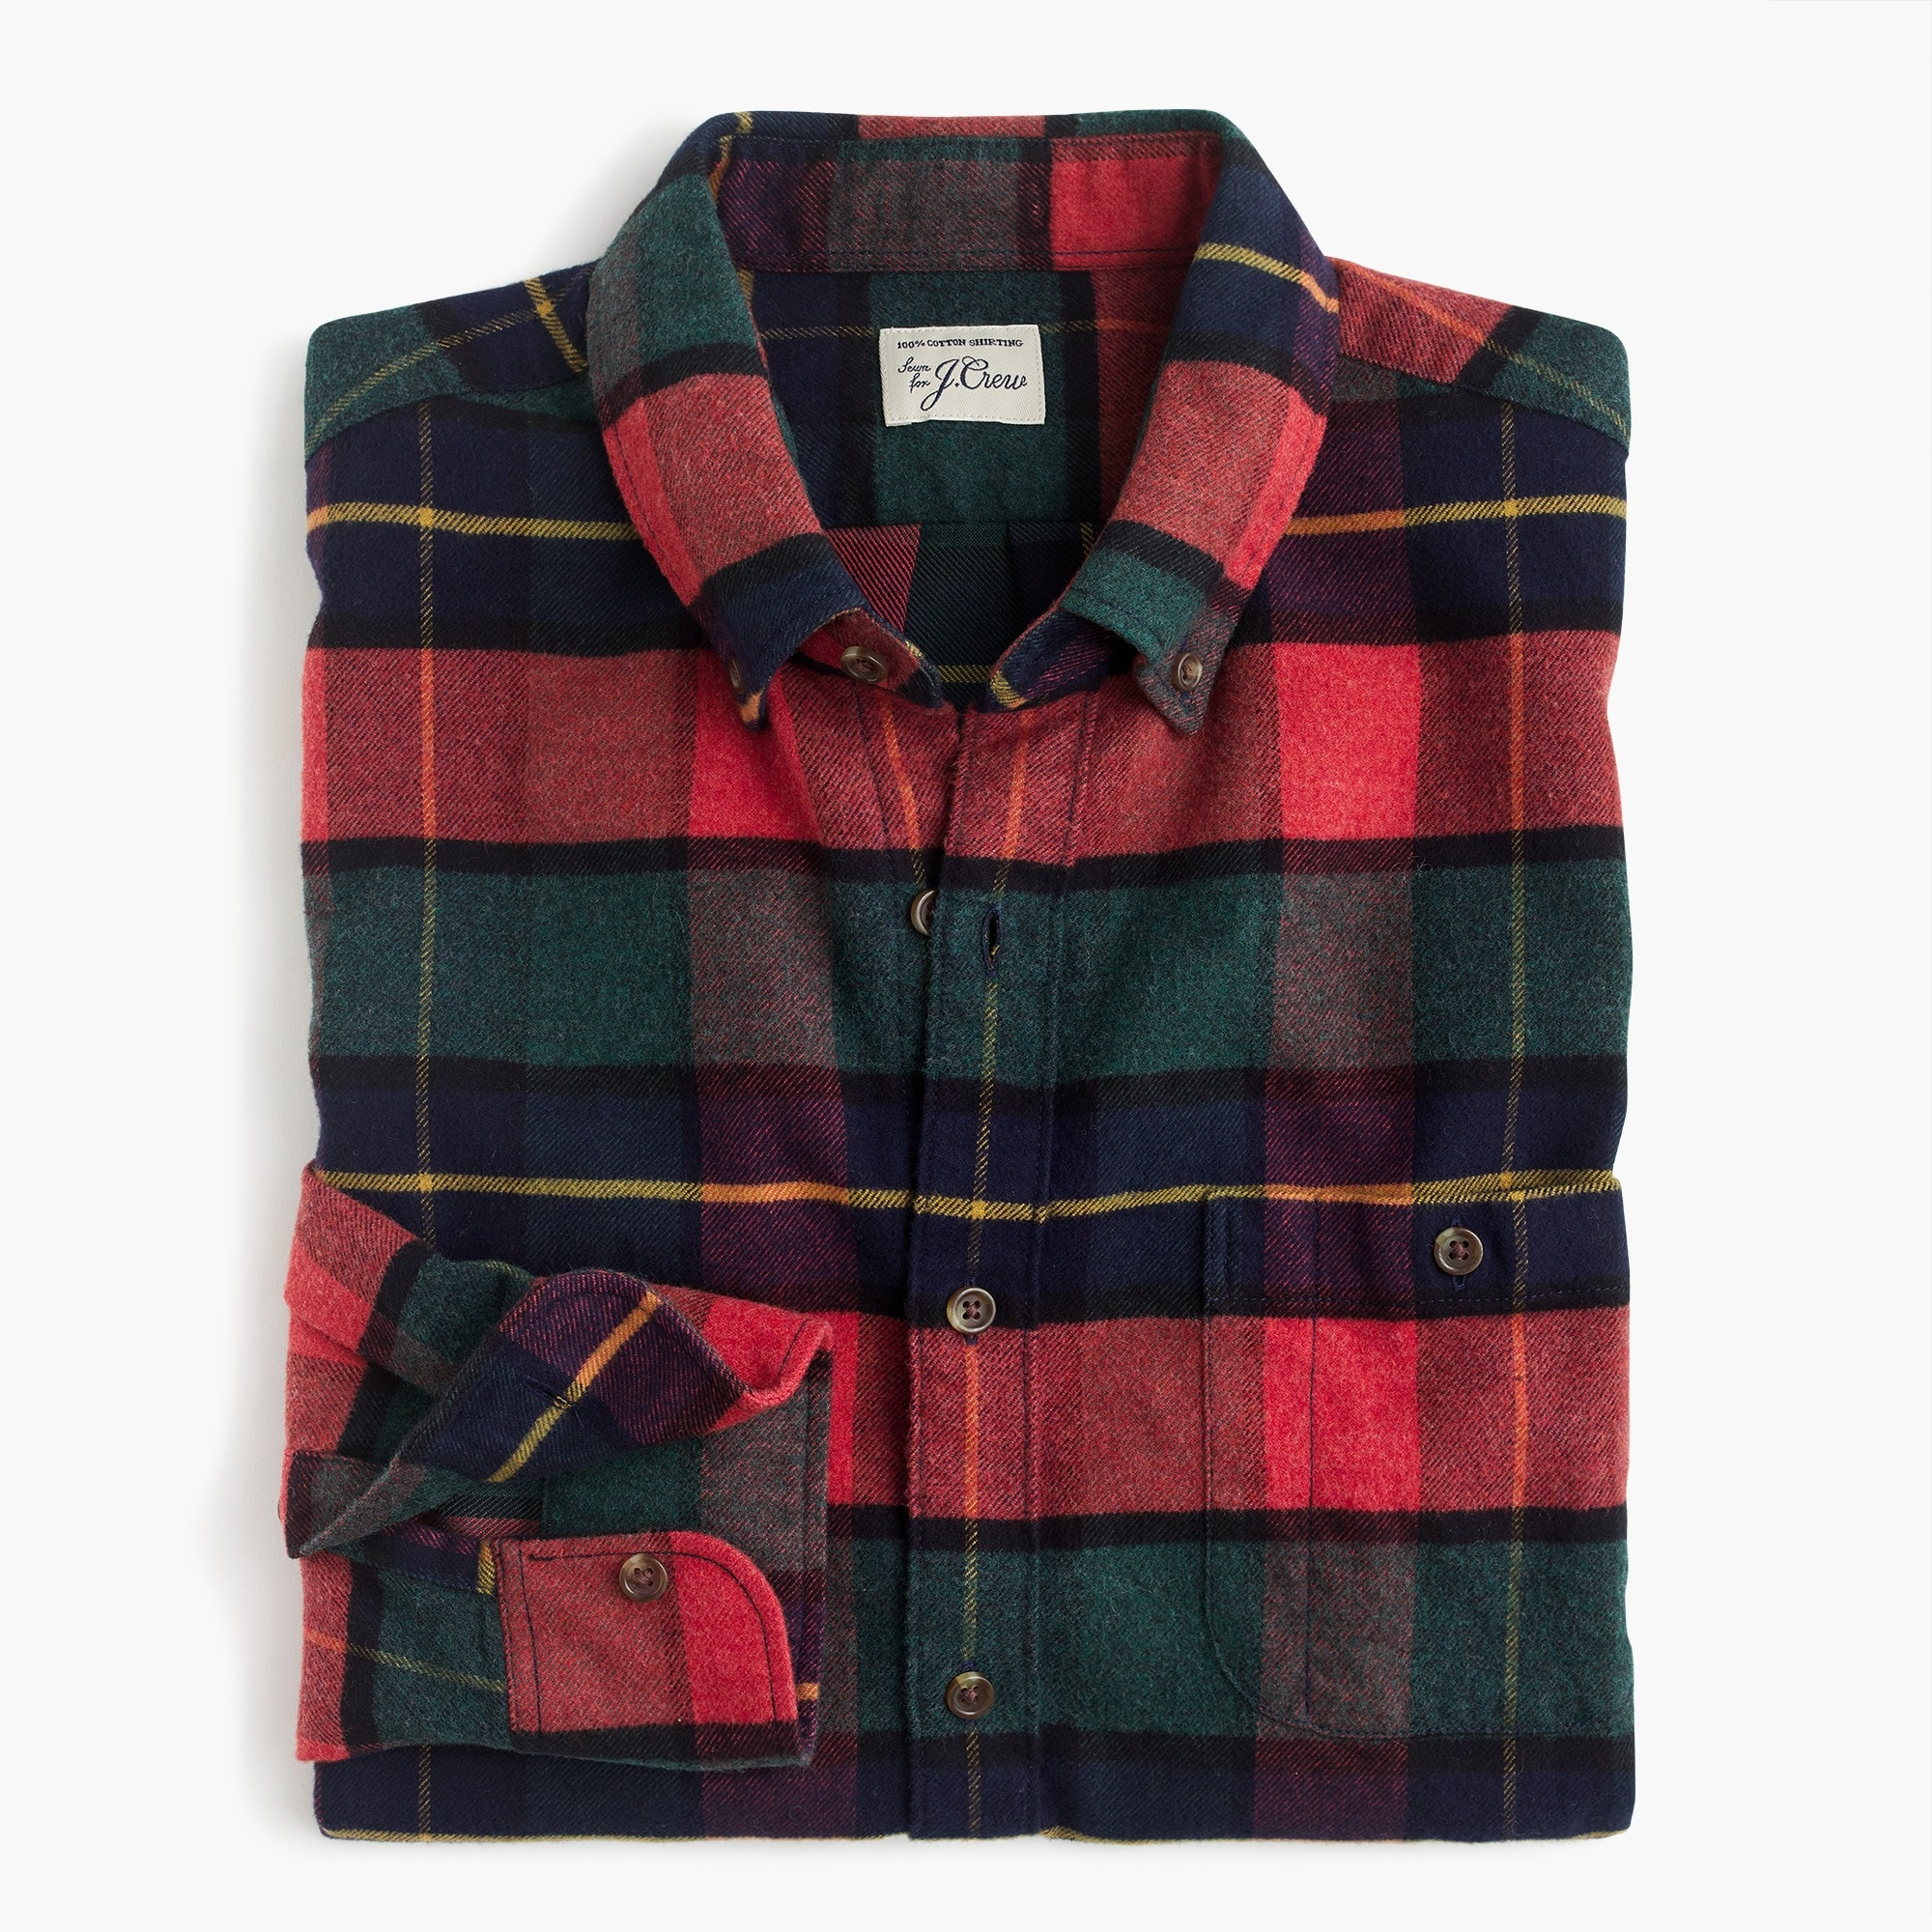 Slim brushed heather elbow-patch shirt in red plaid